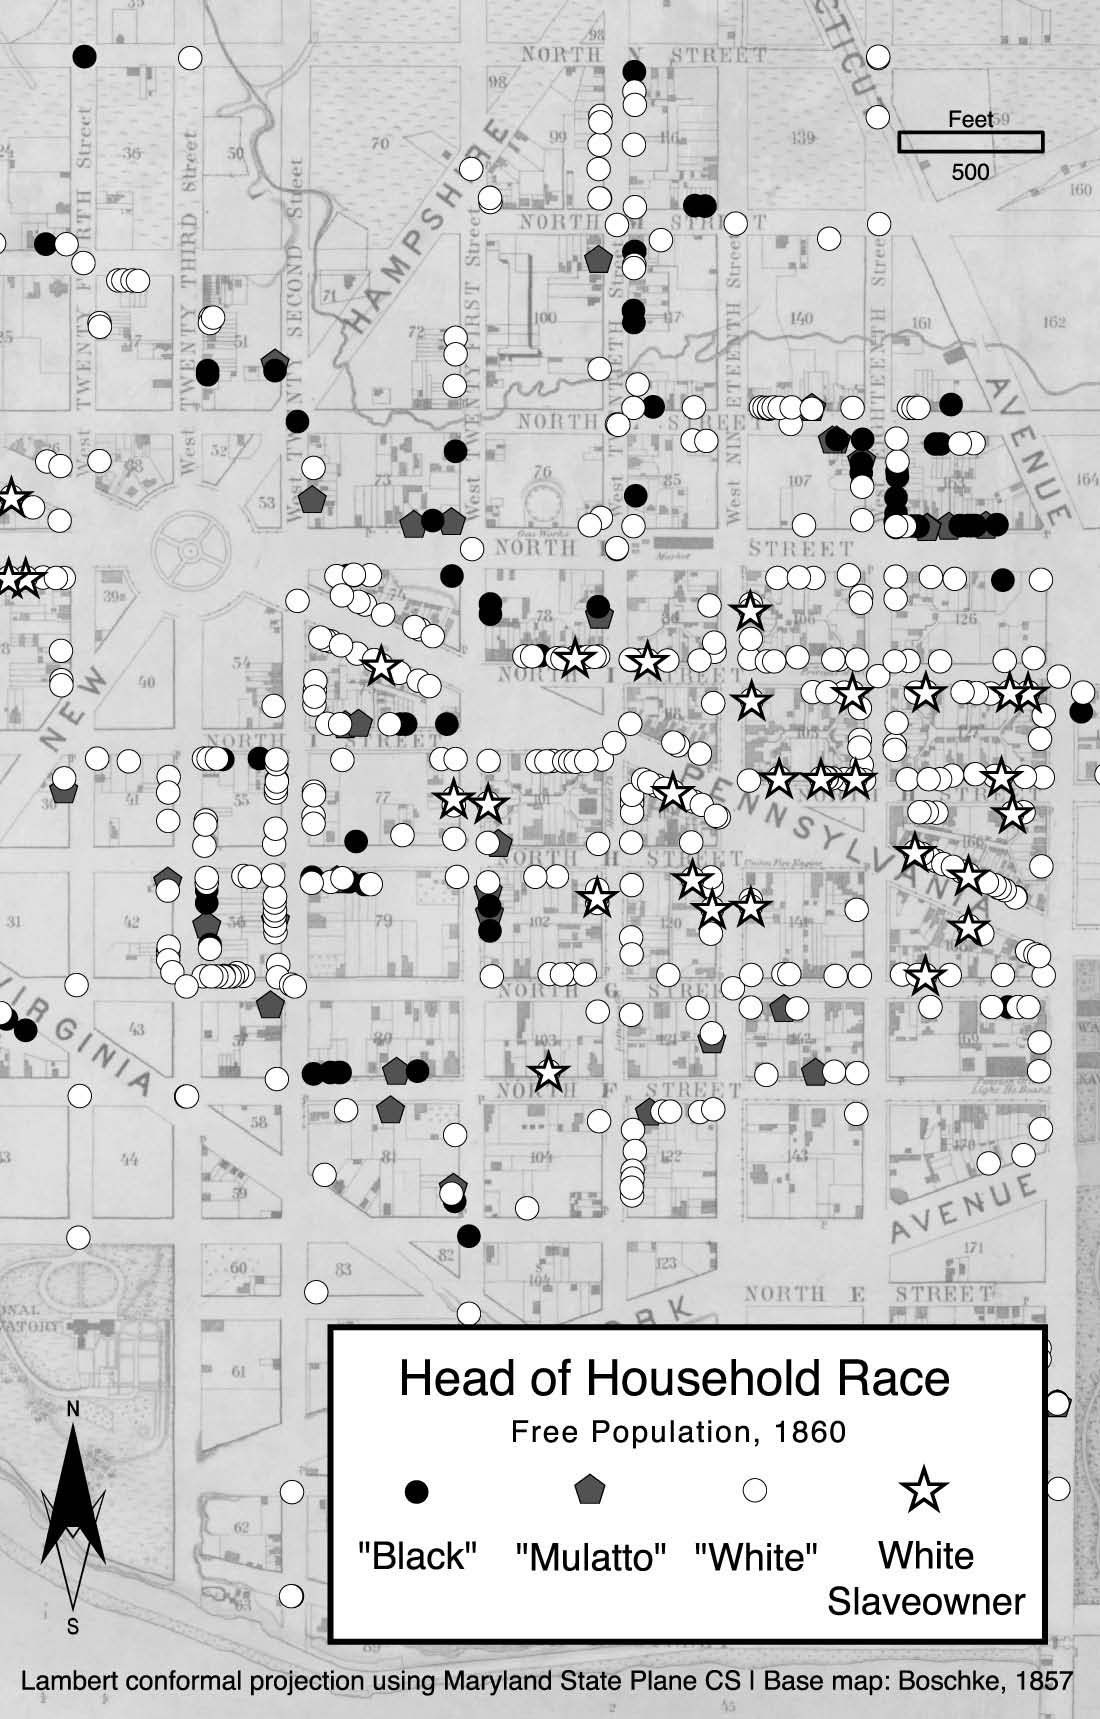 Image showing head of household race, including slave owners, depicted on a map of the First Ward in Washington, DC